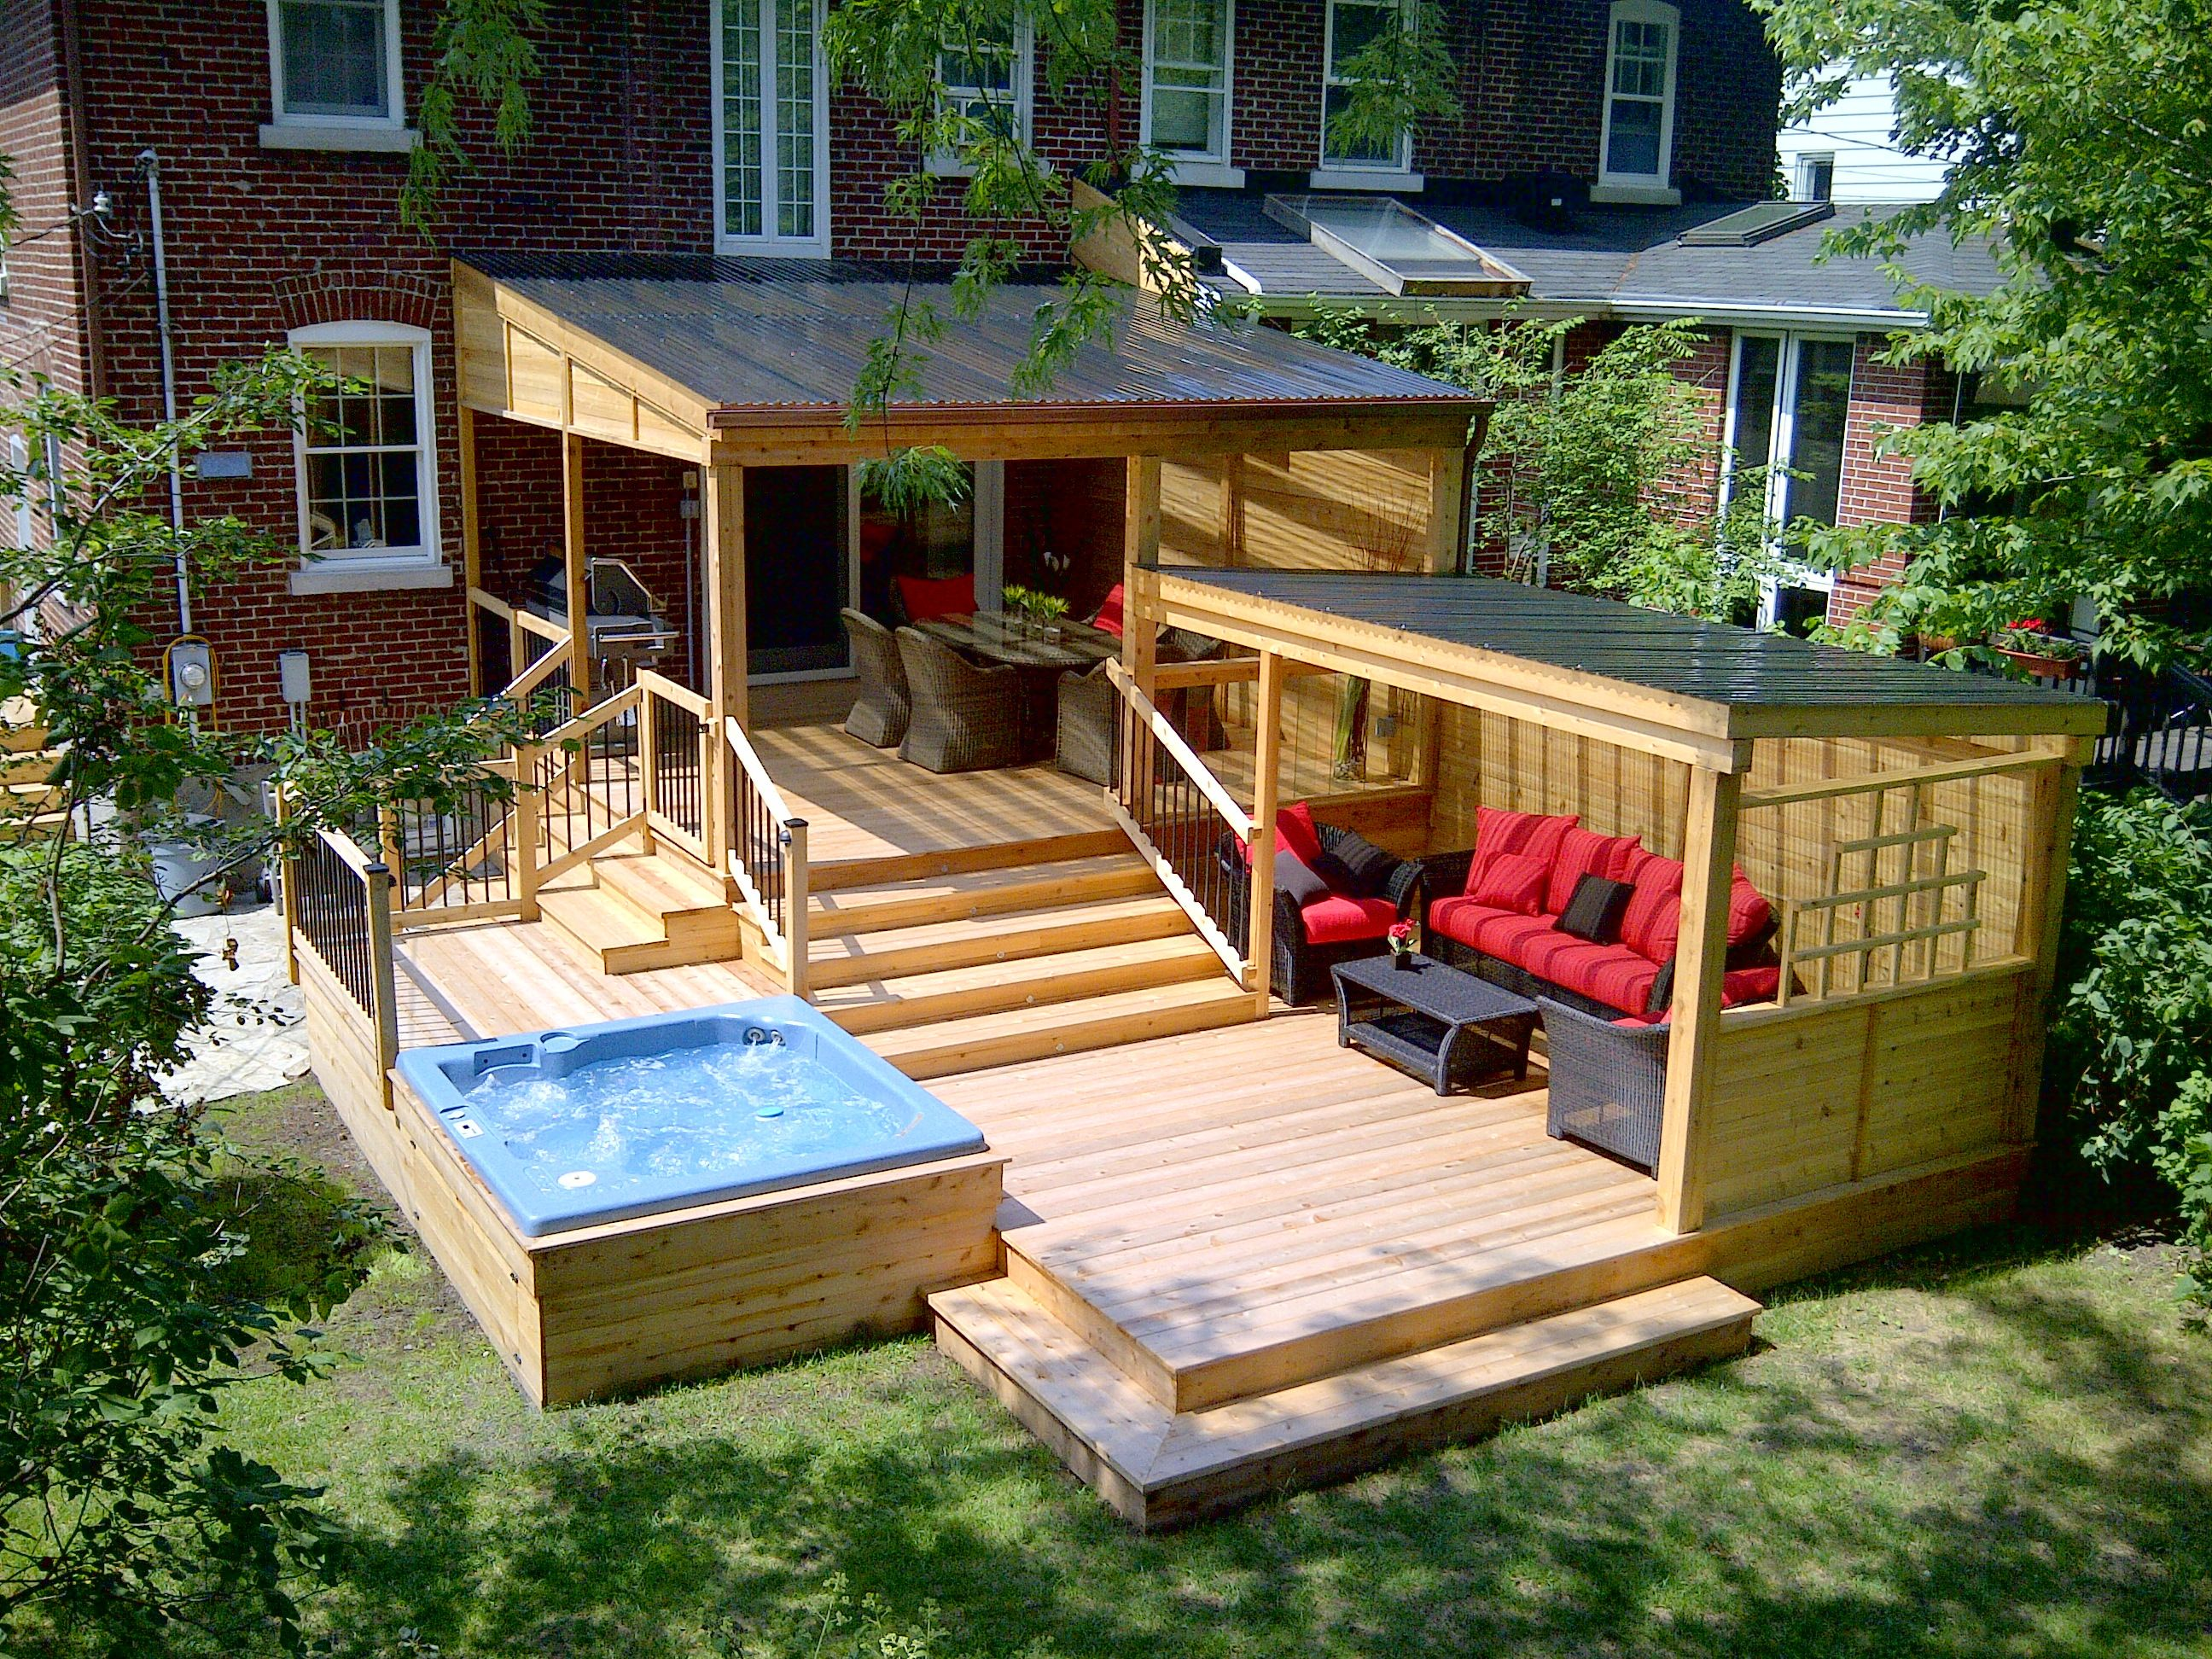 multifunctionnal red cedar deck with covered dinning and lounging area and integrated hot tub. Black Bedroom Furniture Sets. Home Design Ideas